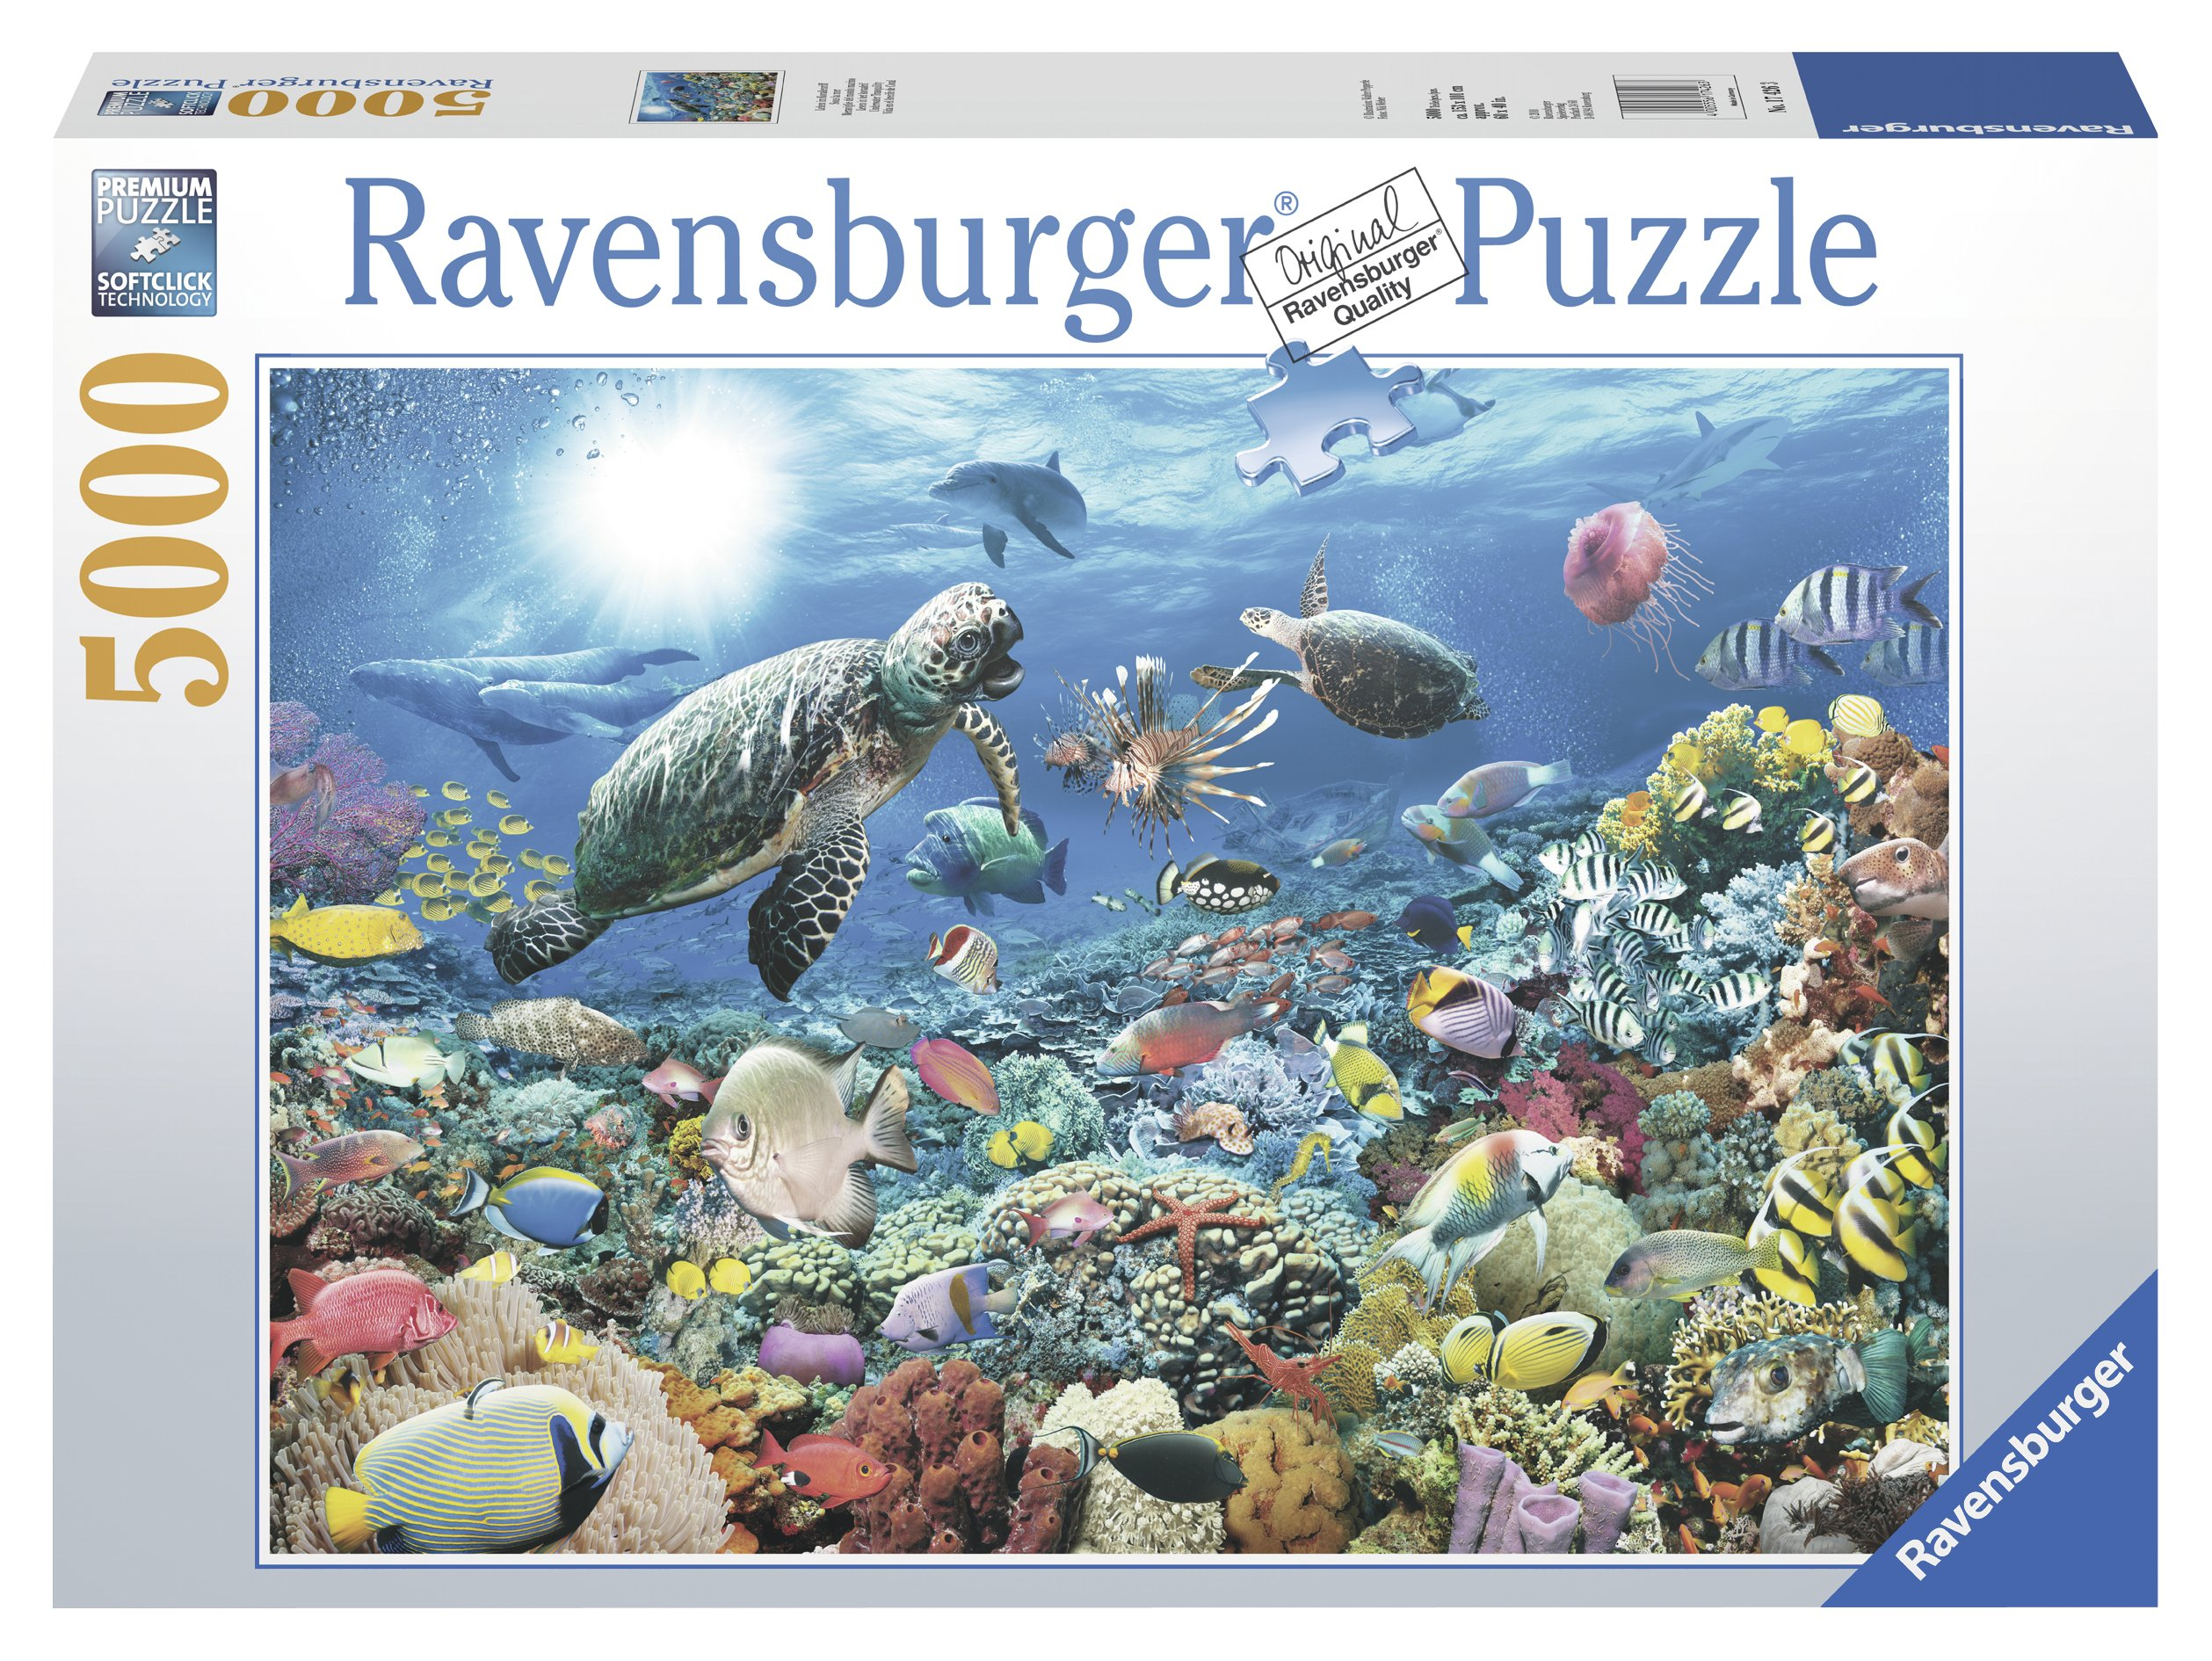 Ravensburger Beneath The Sea 5000 Piece Jigsaw Puzzle for Adults - Softclick Technology Means Pieces Fit Together Perfectly by Ravensburger